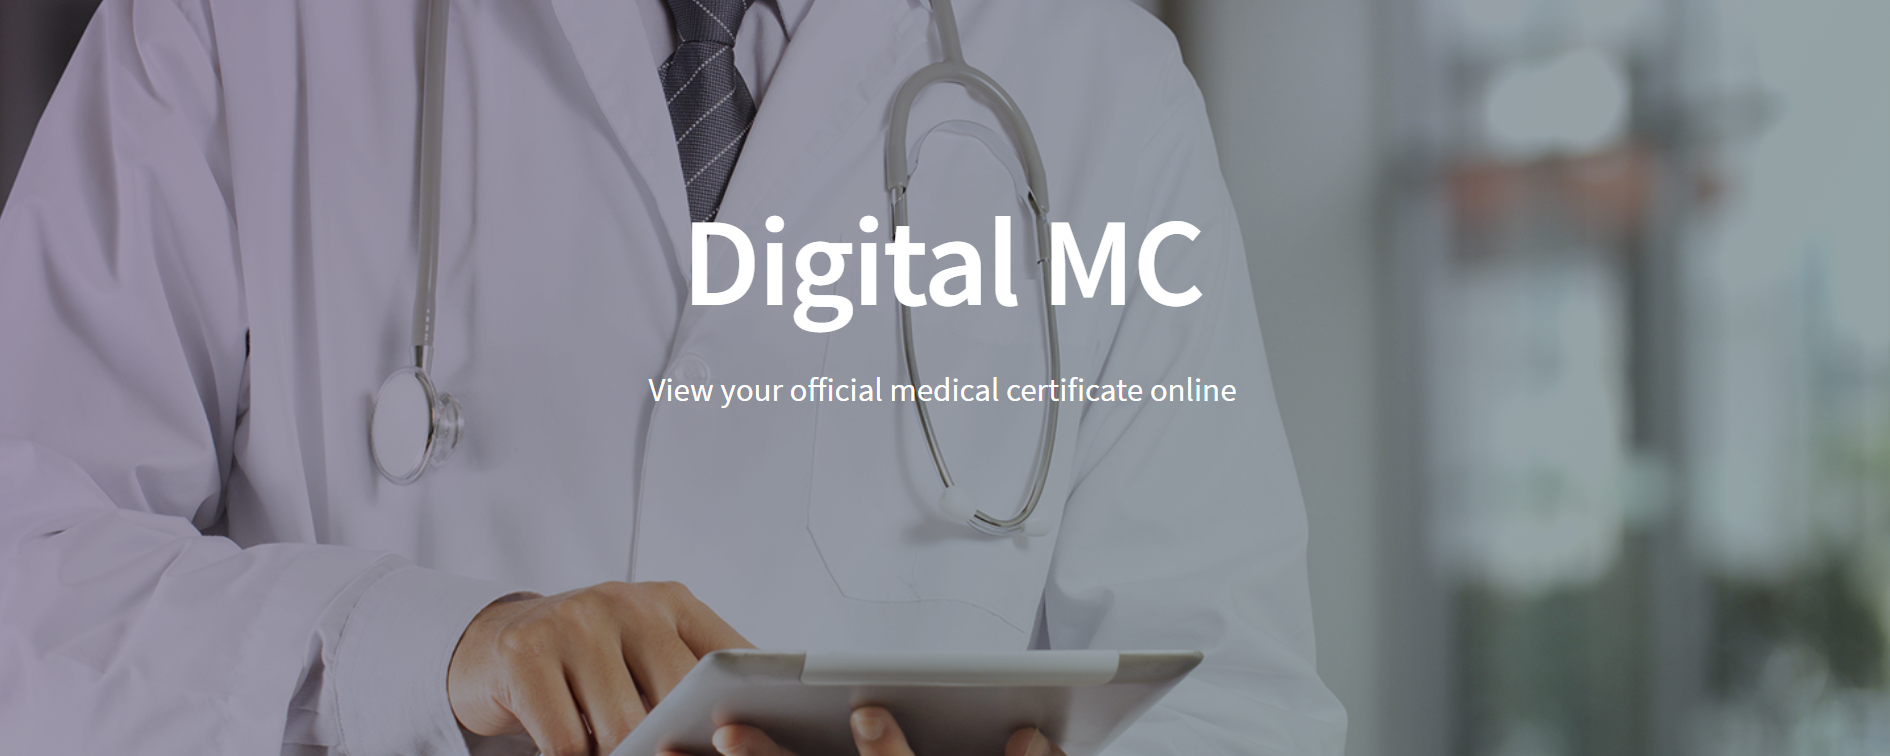 DigiMC by GovTech